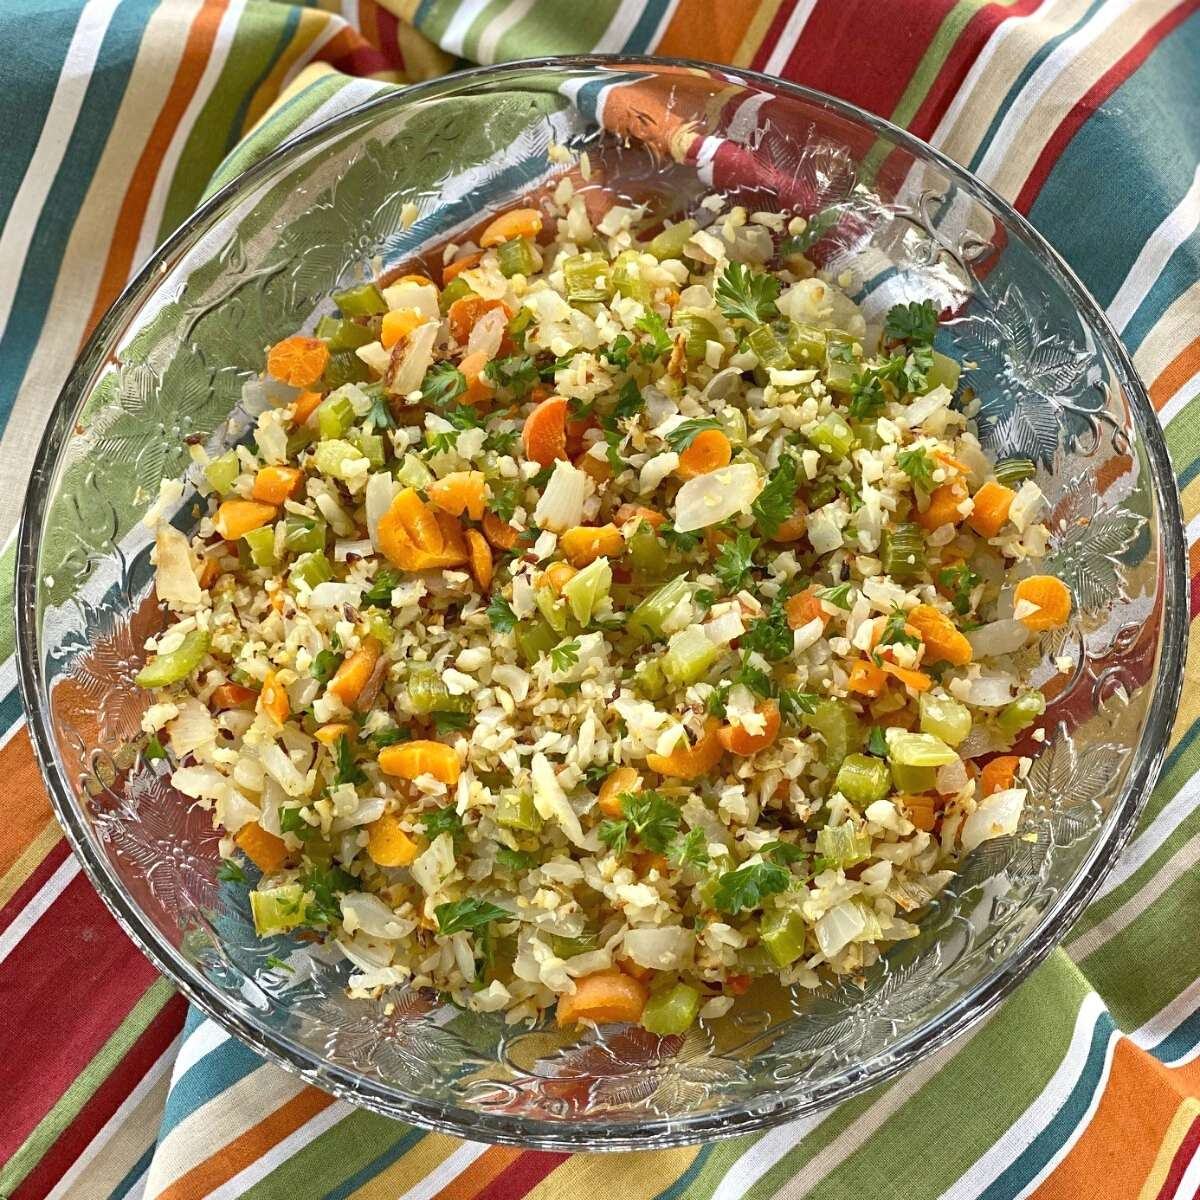 Cauliflower rice pilaf with vegetables in a bowl.